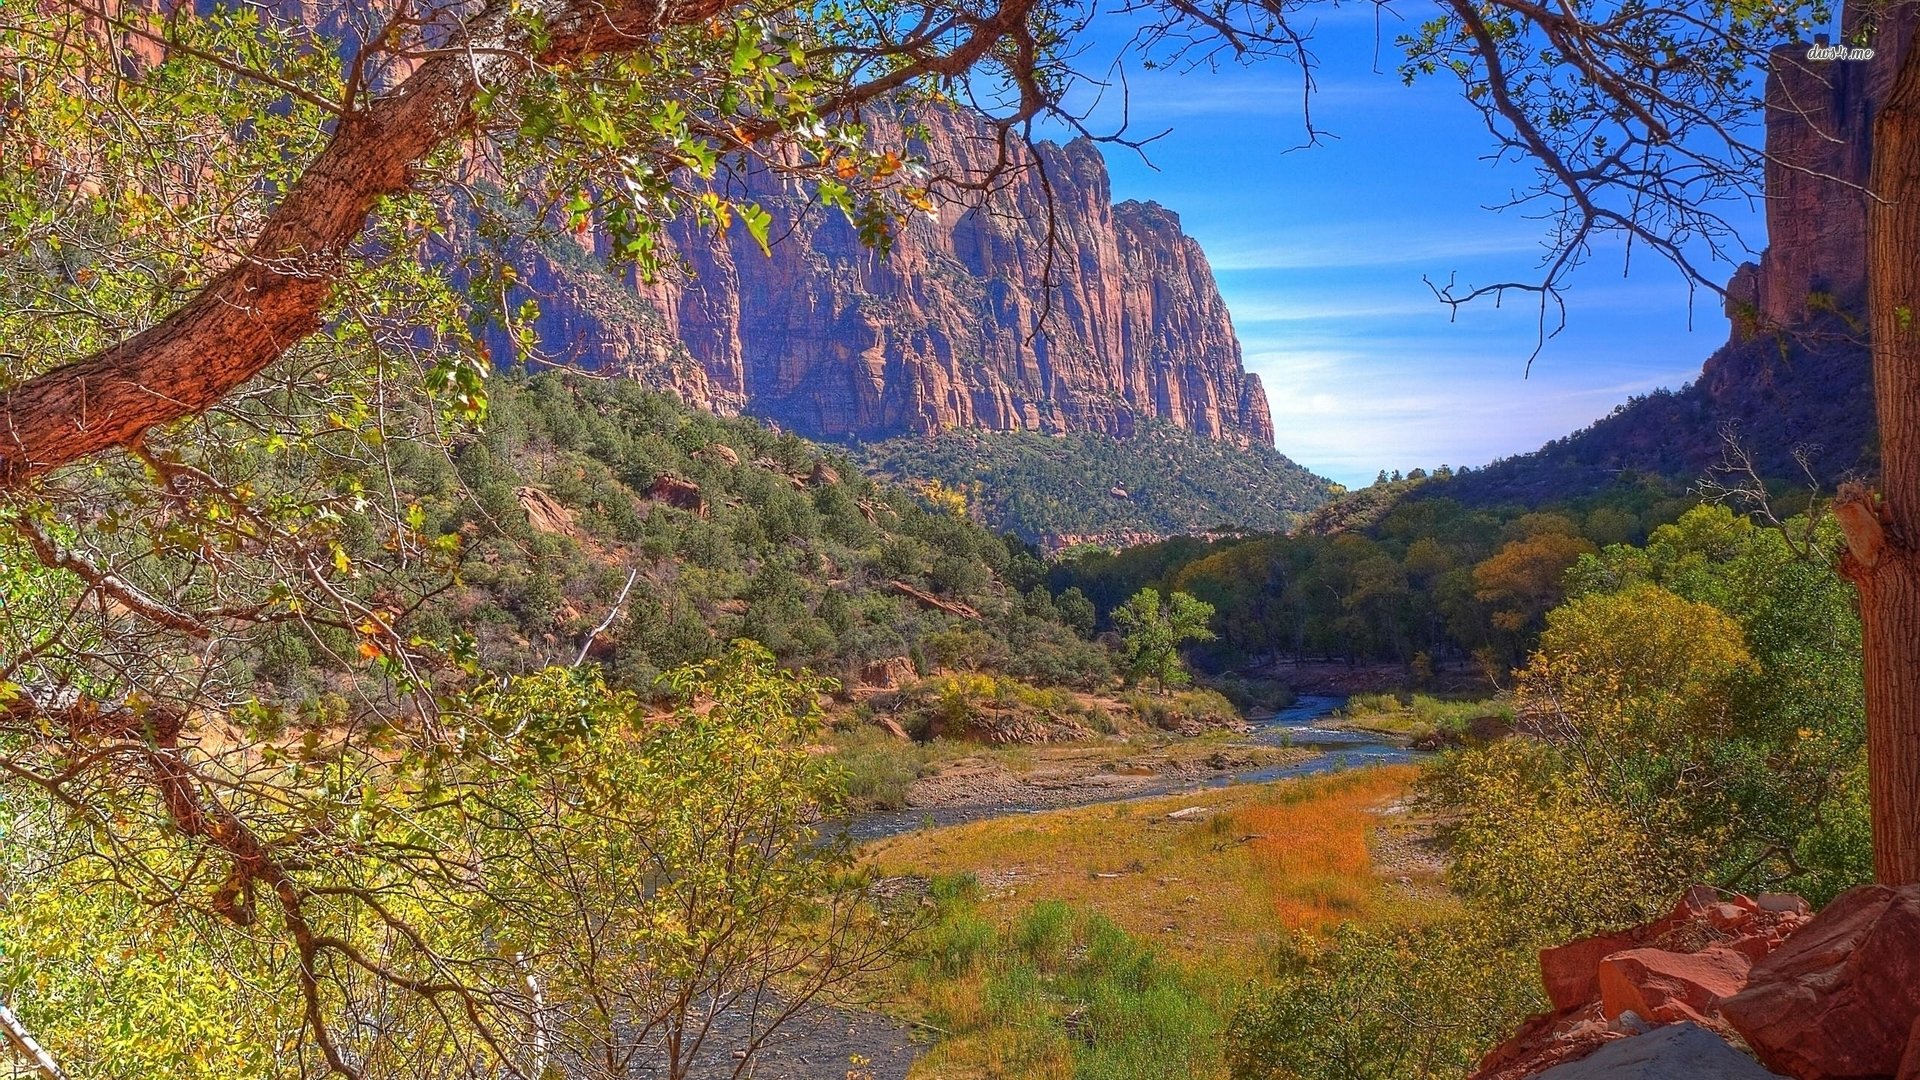 Zion National Park wallpaper   Nature wallpapers   38016 1920x1080